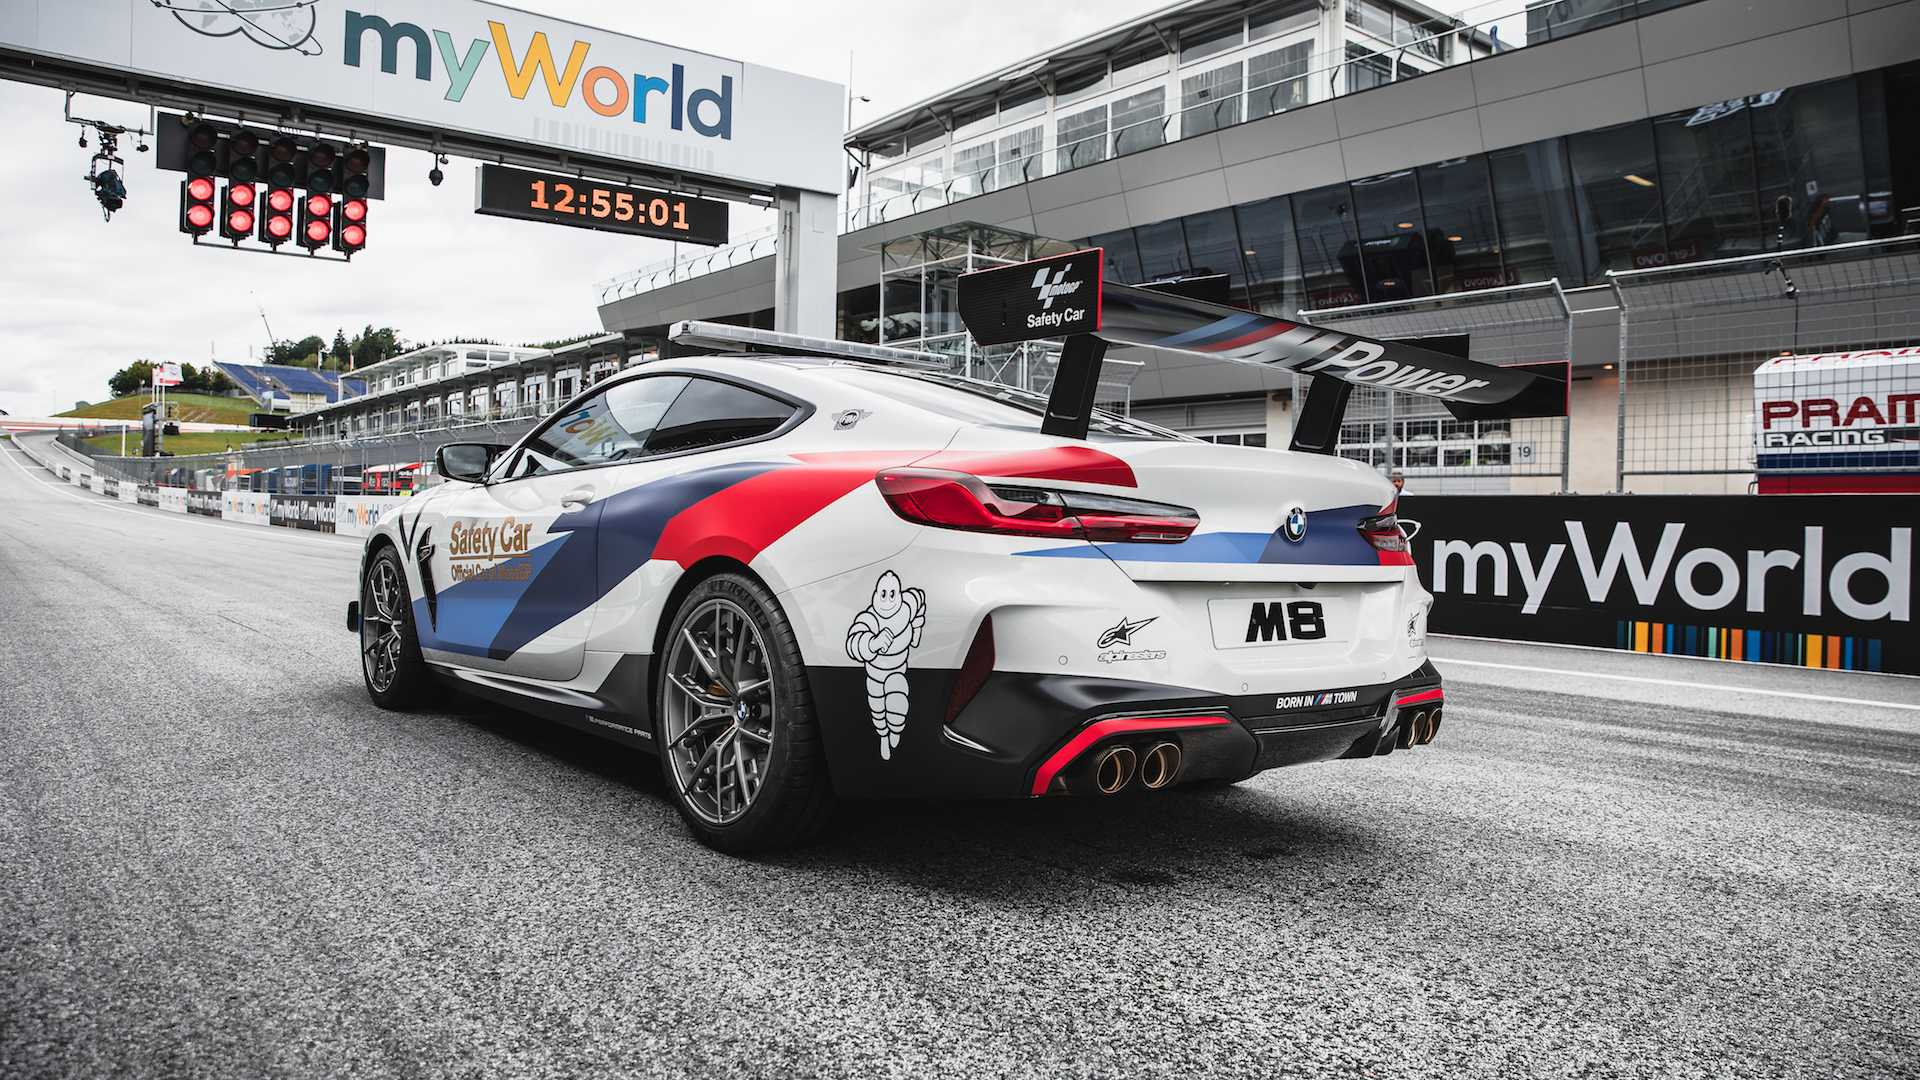 bmw-m8-motogp-safety-car-6.jpg